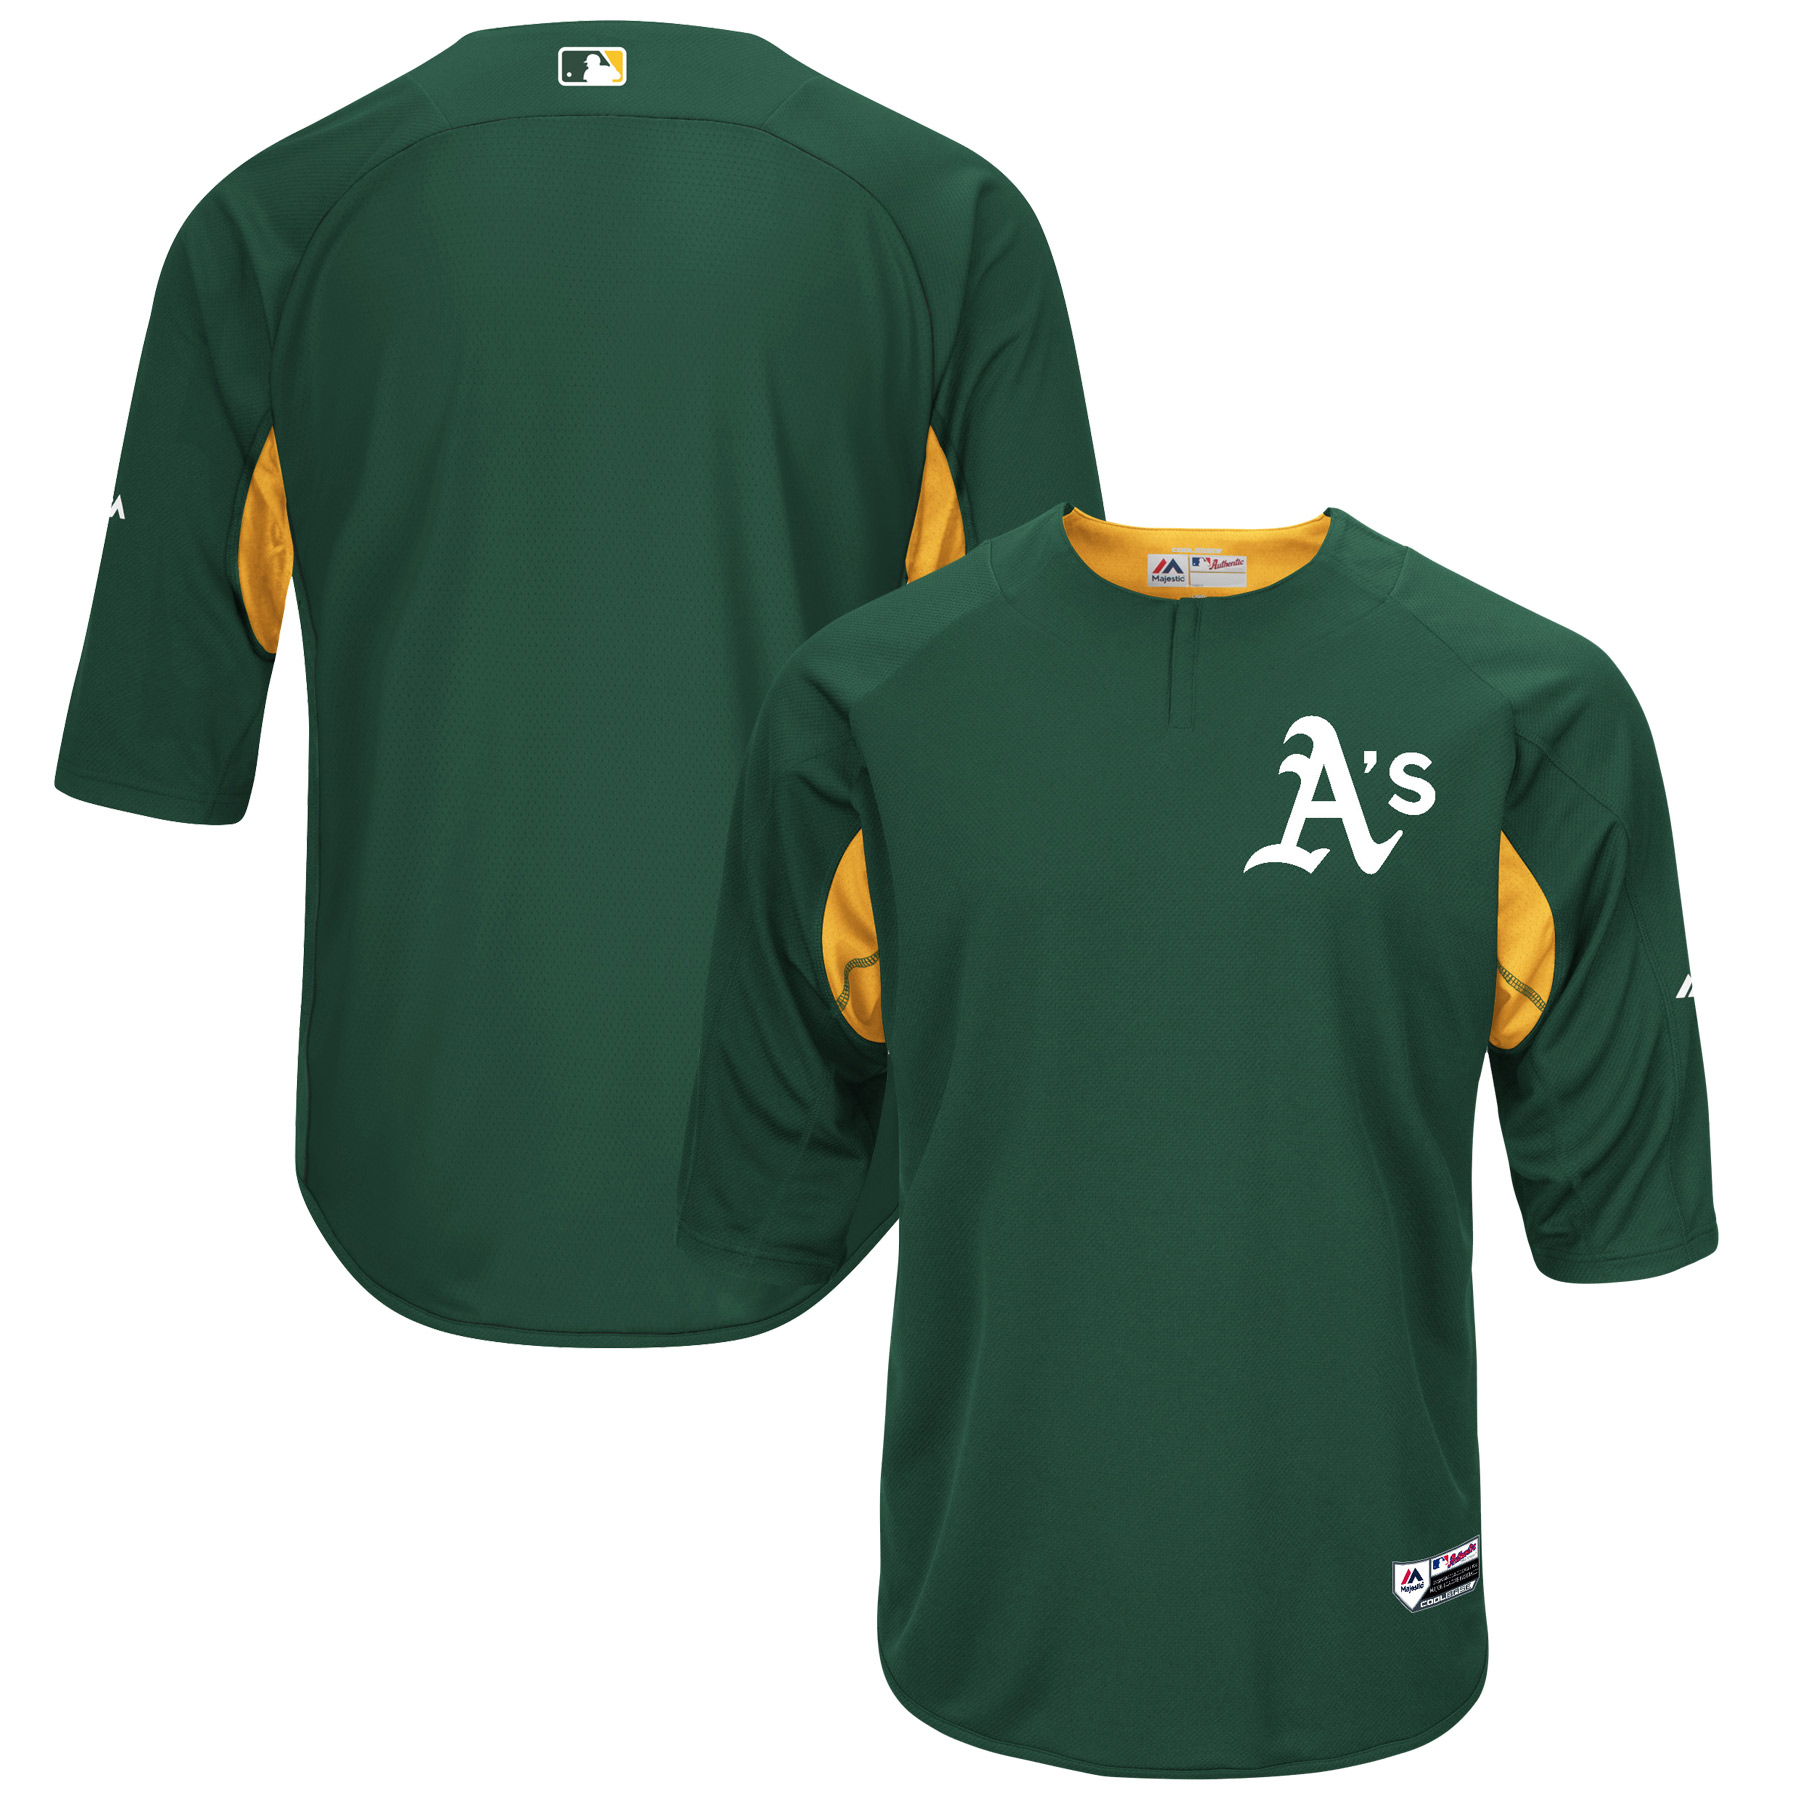 Oakland Athletics Majestic Authentic Collection On-Field 3/4-Sleeve Batting Practice Jersey - Green/Gold